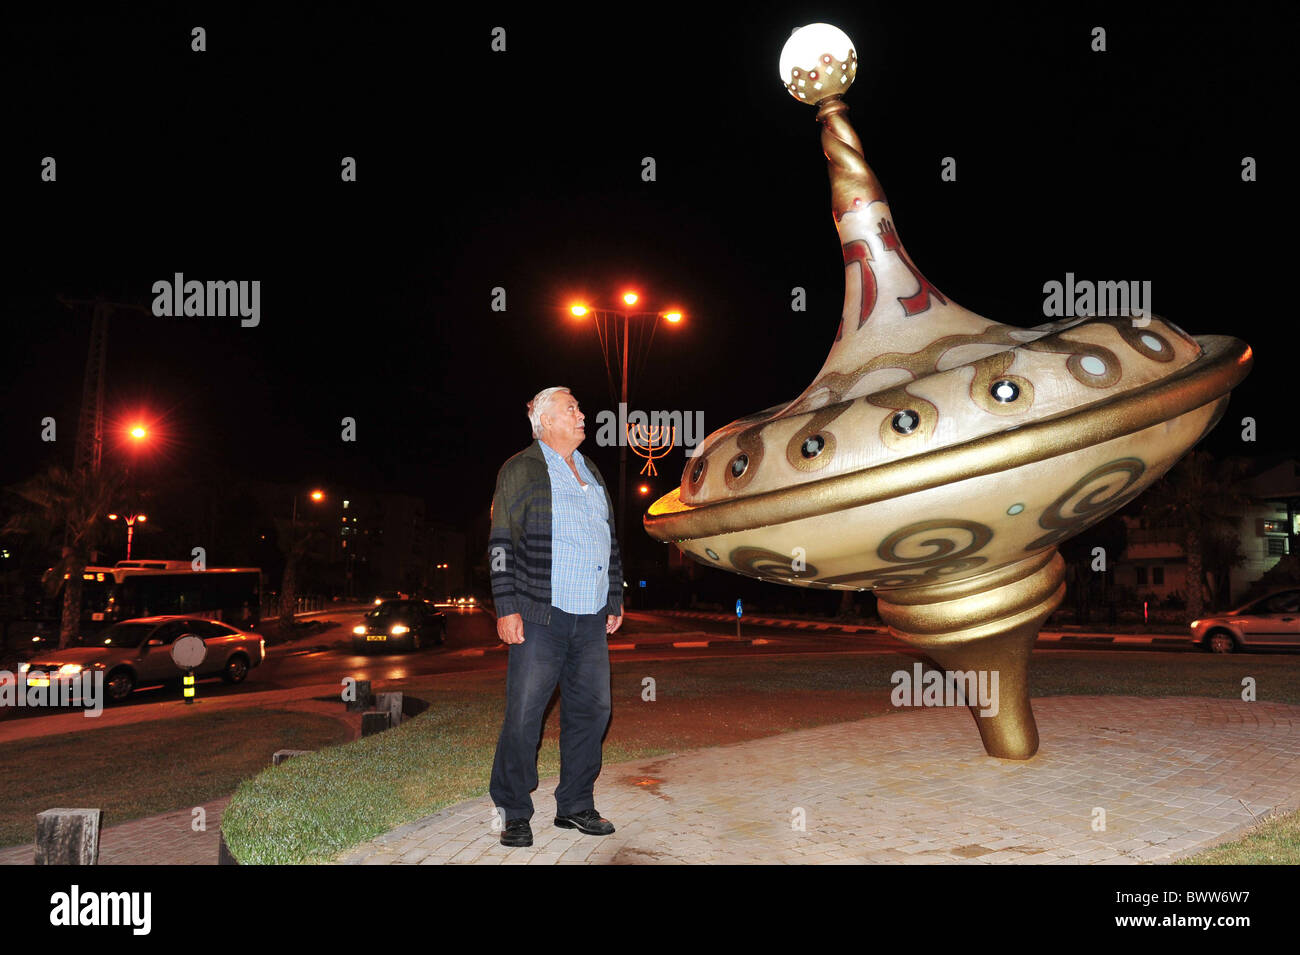 The Biggest Spinning Top In Israel For Hanukkah - Stock Image